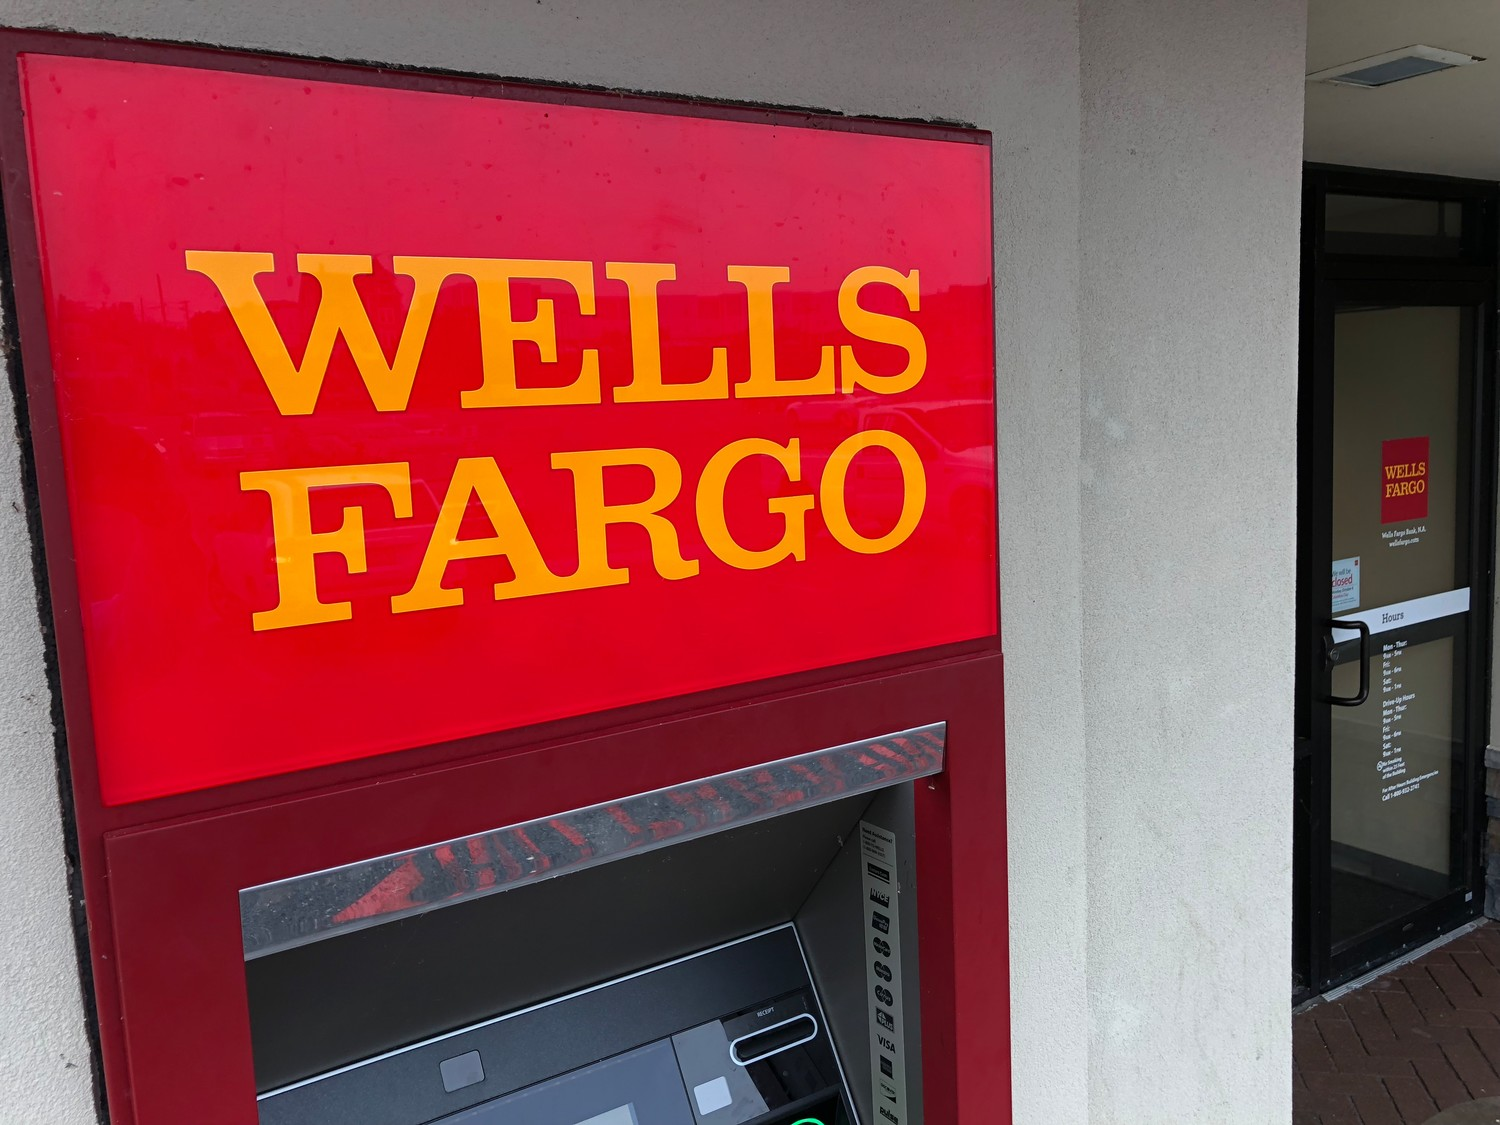 The Wells Fargo on West Main Street was open Wednesday, a day after an attempted bank robbery there.